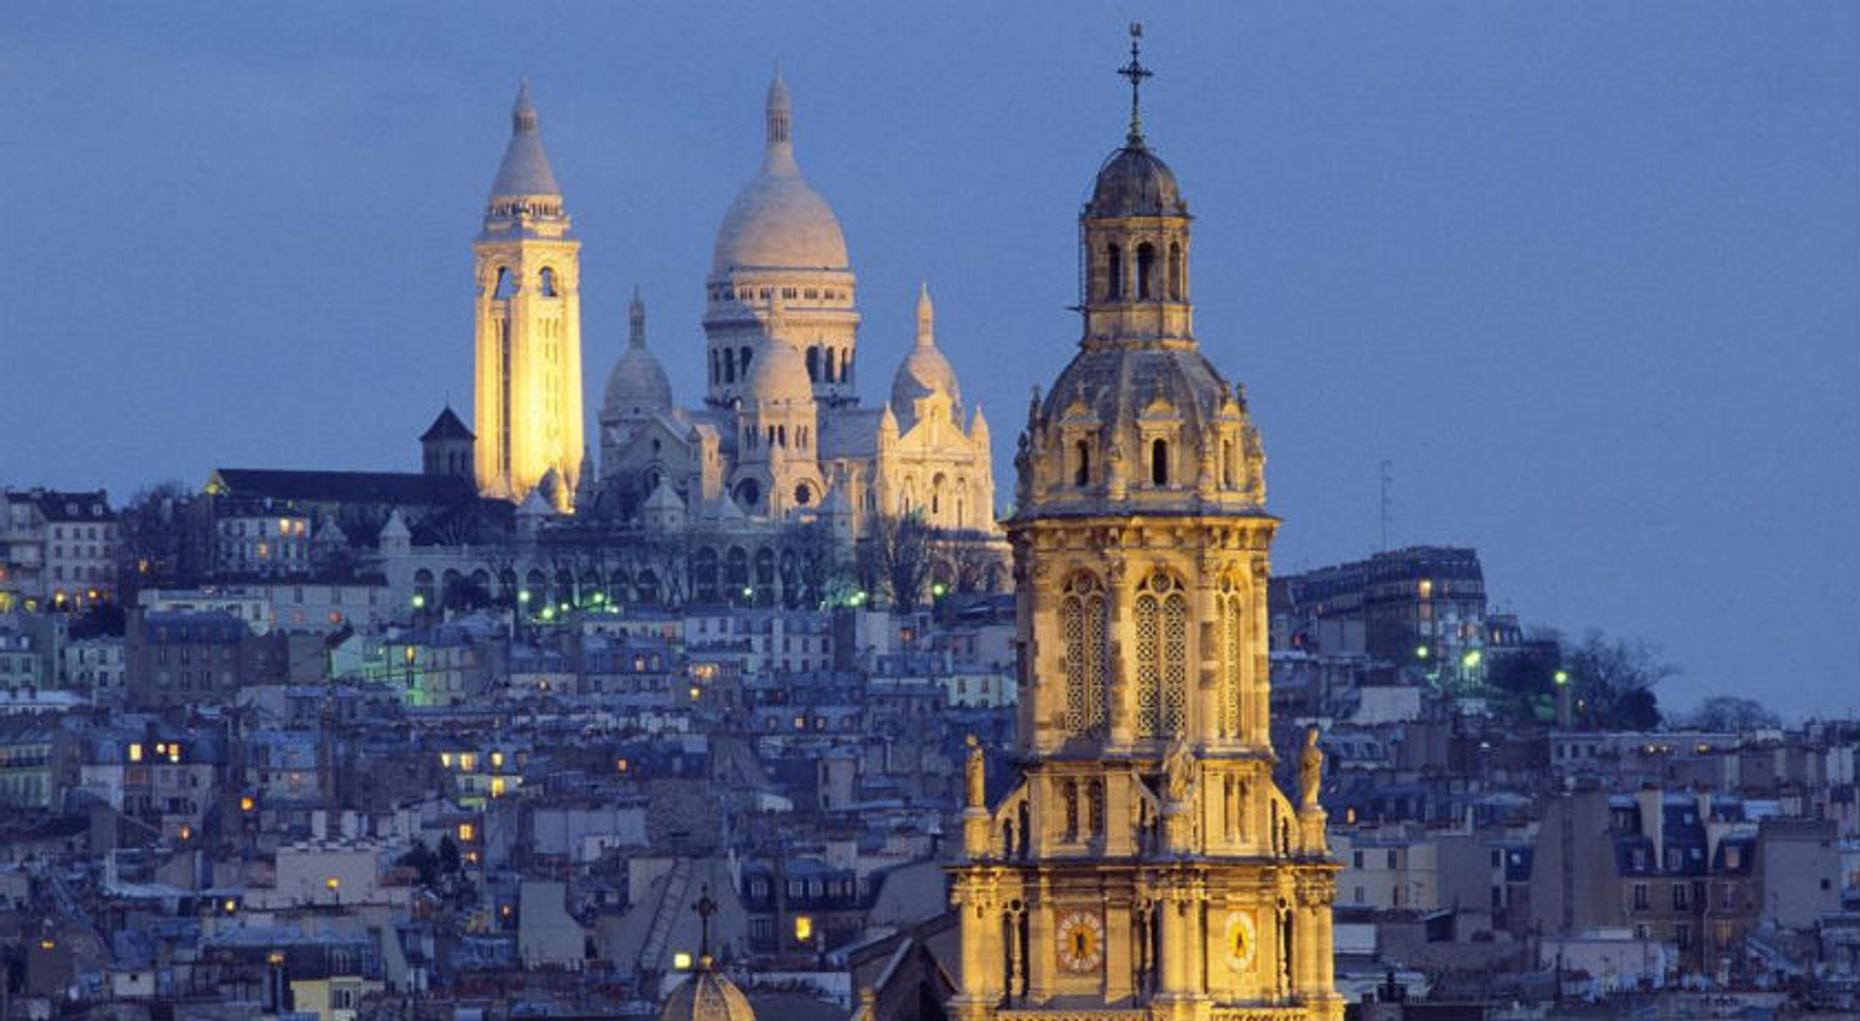 Montmartre, Orsay, and the Impressionists